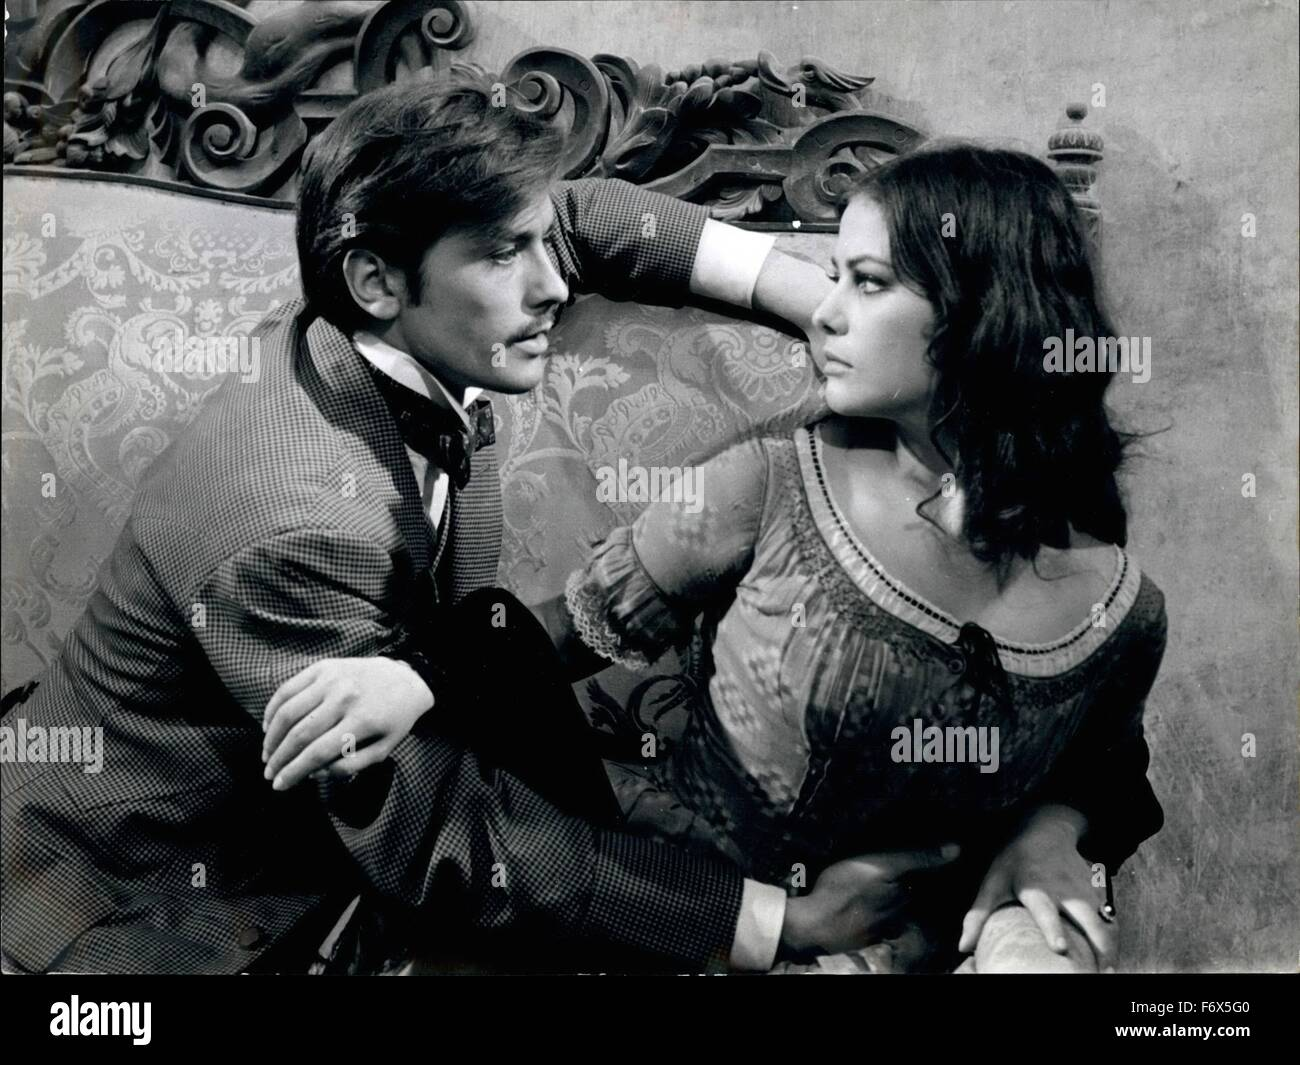 November 1962 - Rome - At Bassan di Sutri, a little Country near Home Luchimo VISCONTI, the famous Italian director - Stock Image